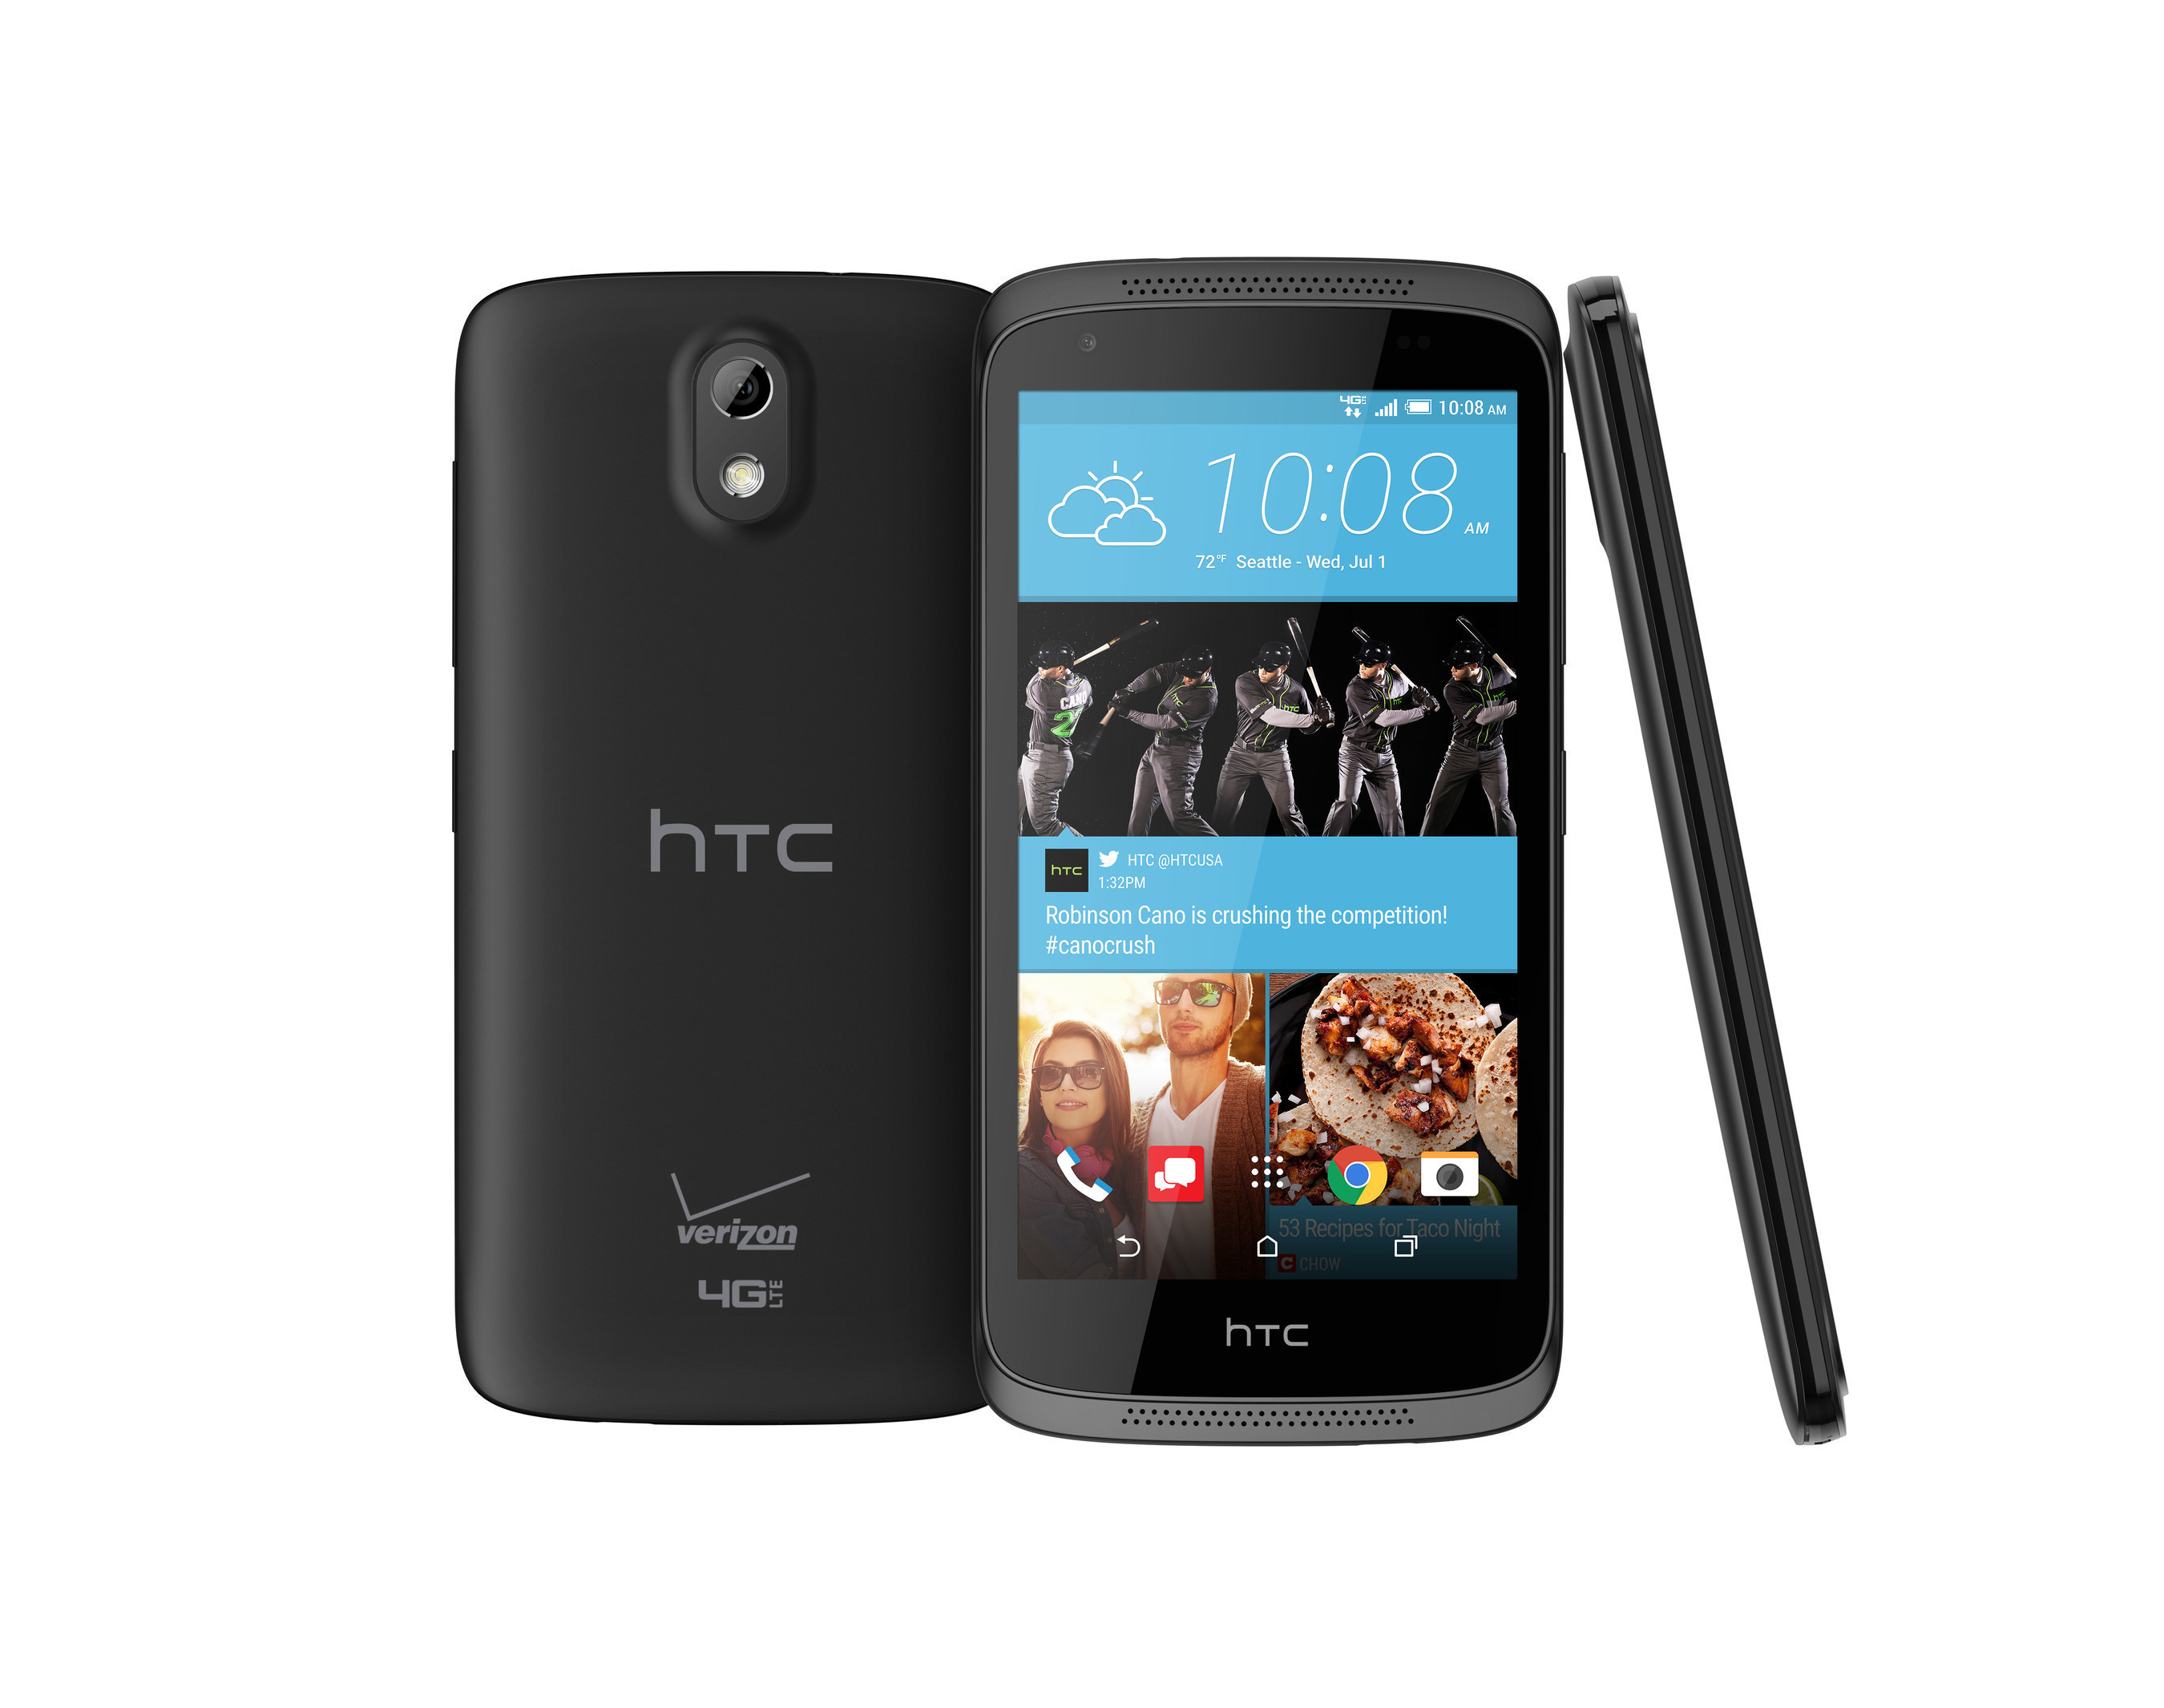 The HTC Desire 526 is one of the new HTC Desire smartphones designed to make premium features affordable and accessible to all.